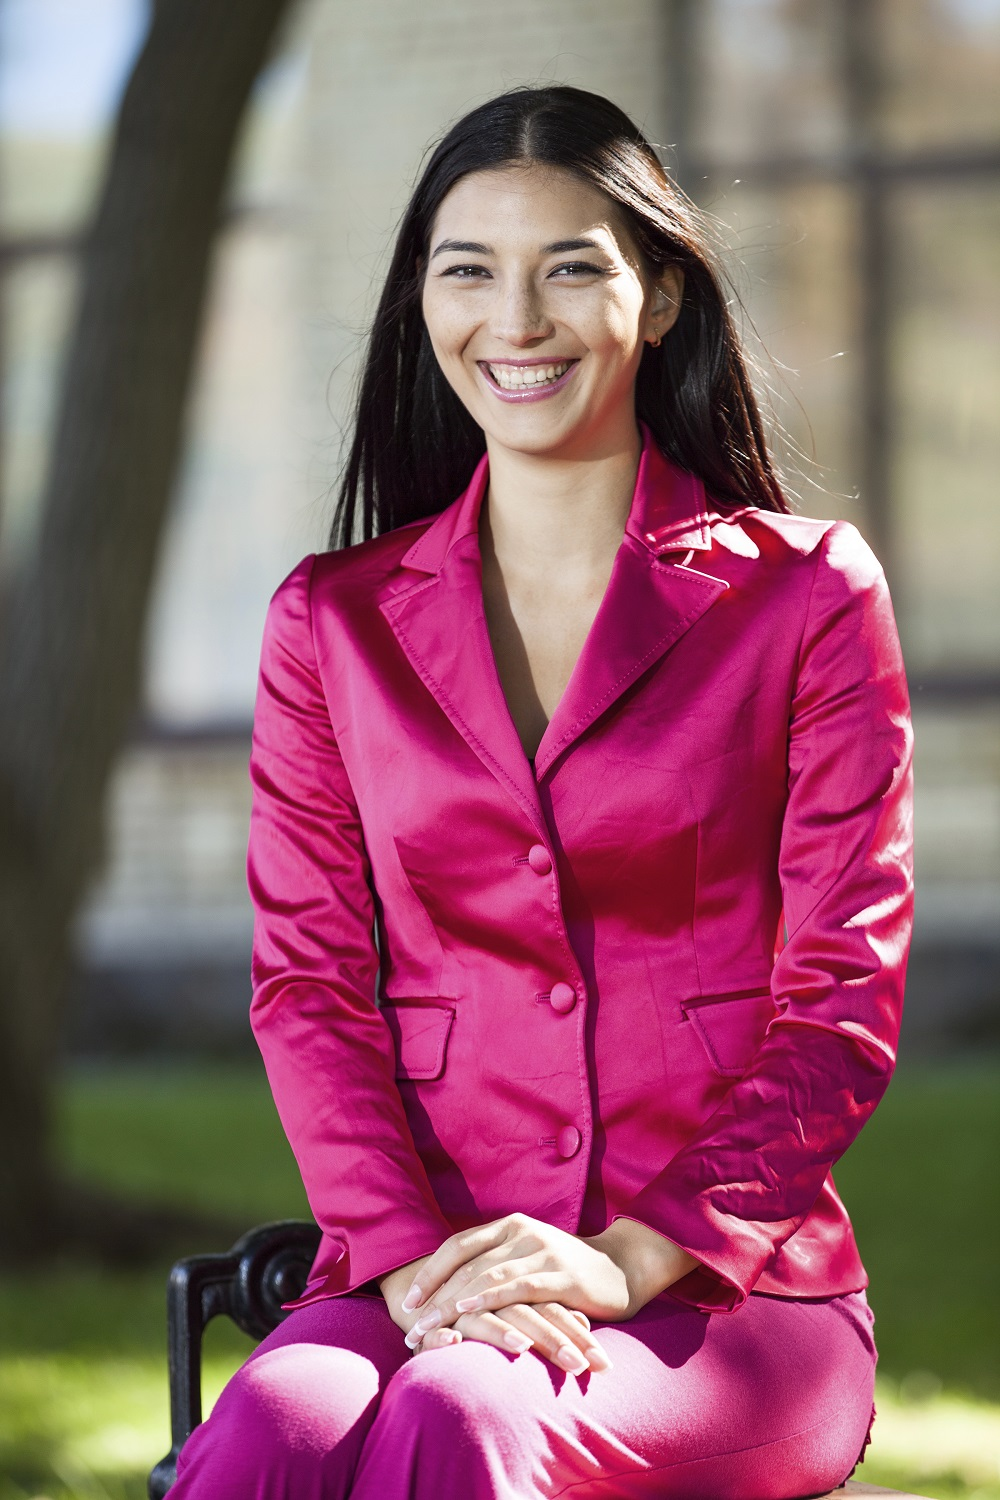 woman in a bright fuschia suit